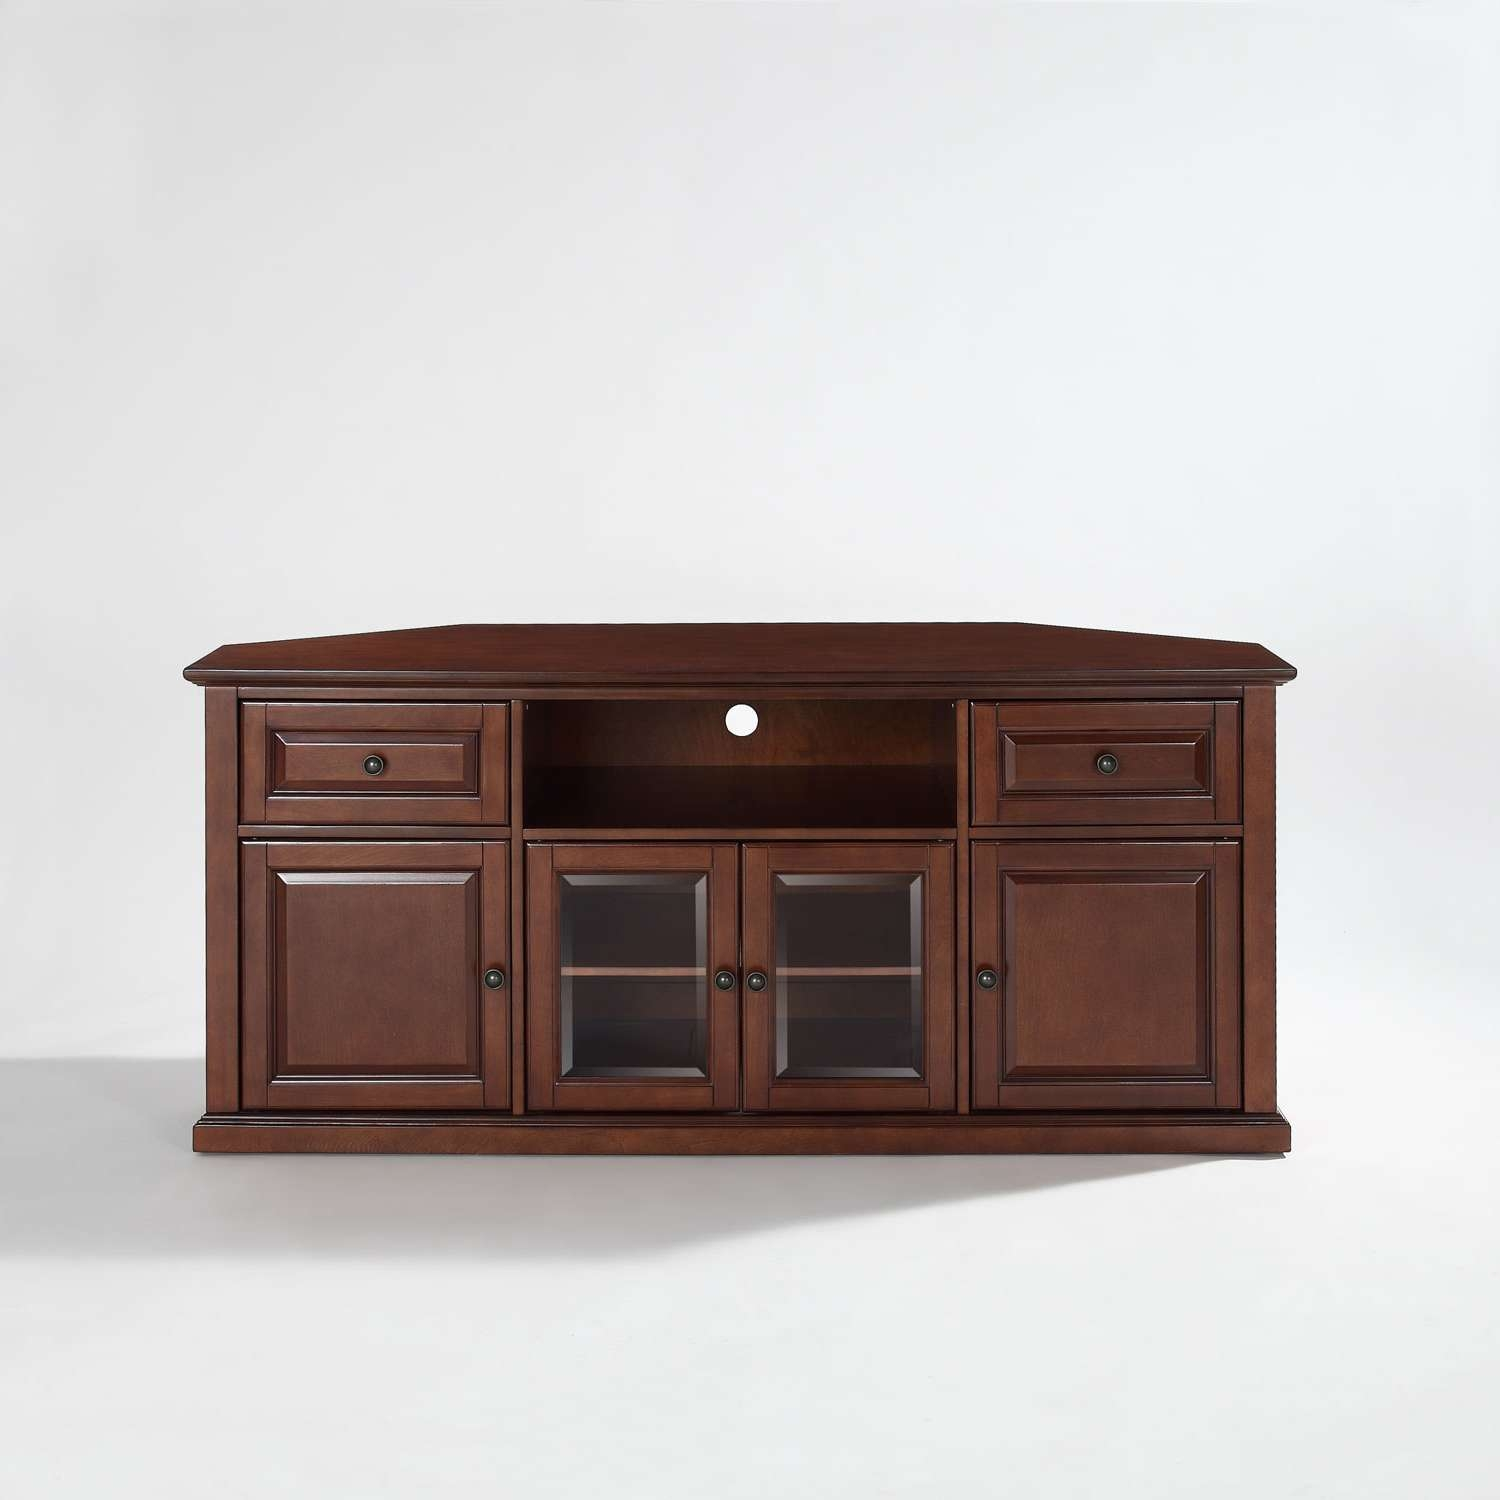 60 Inch Corner Tv Stand In Vintage Mahogany Crosley Furniture With Regard To Wood Corner Tv Cabinets (View 19 of 20)